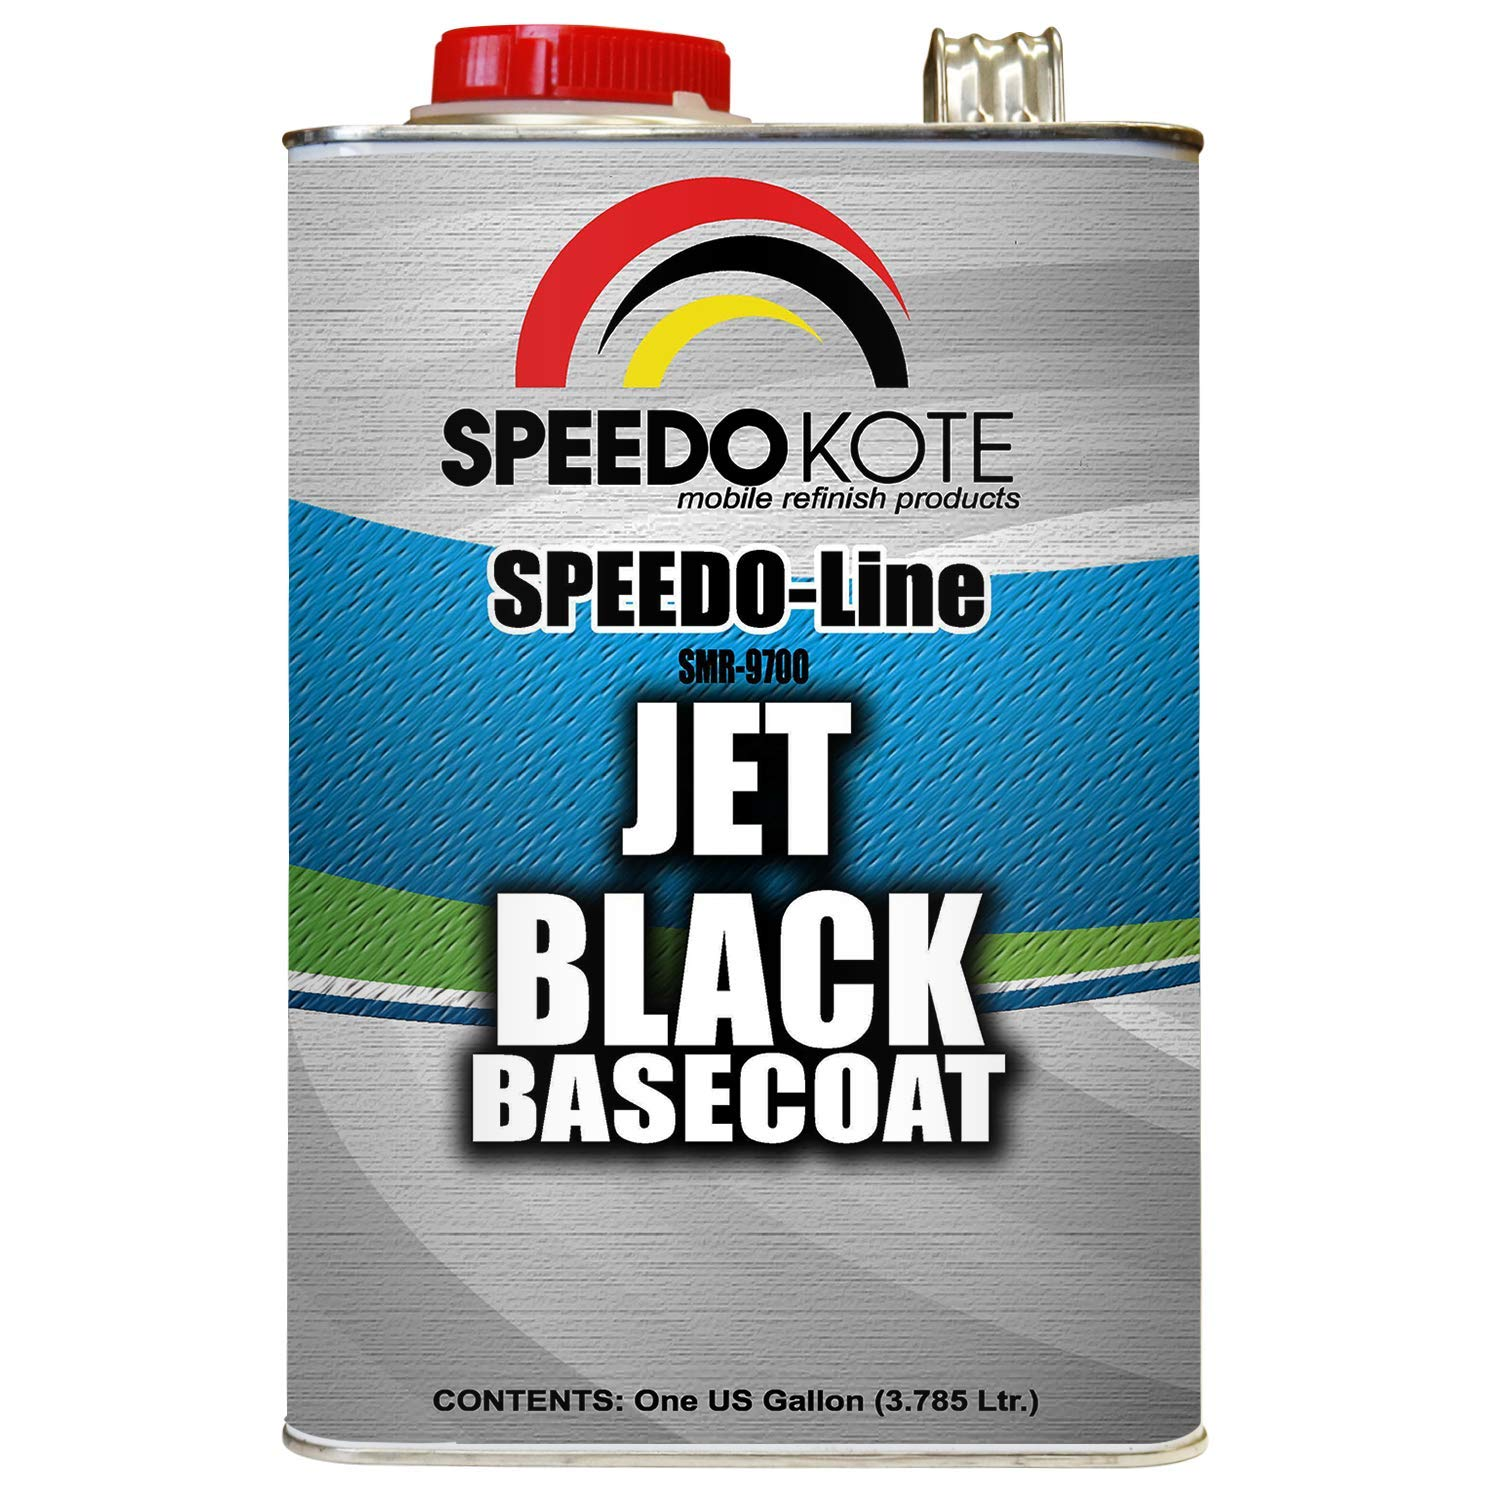 Speedokote Jet Black Automotive Basecoat, One Gallon SMR-9700 by Speedokote (Image #1)